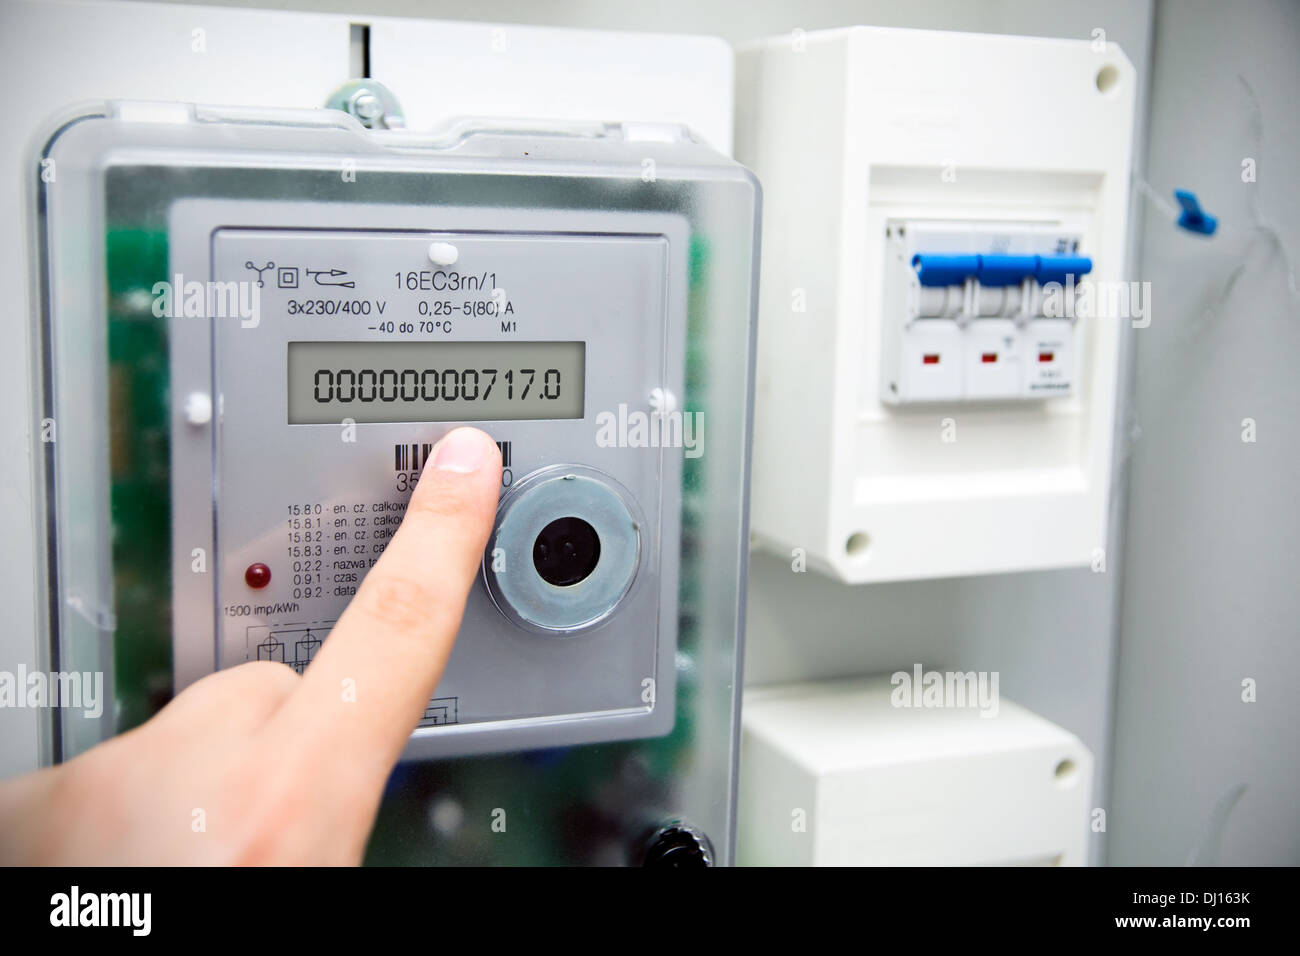 Modern electric meter close up view - Stock Image